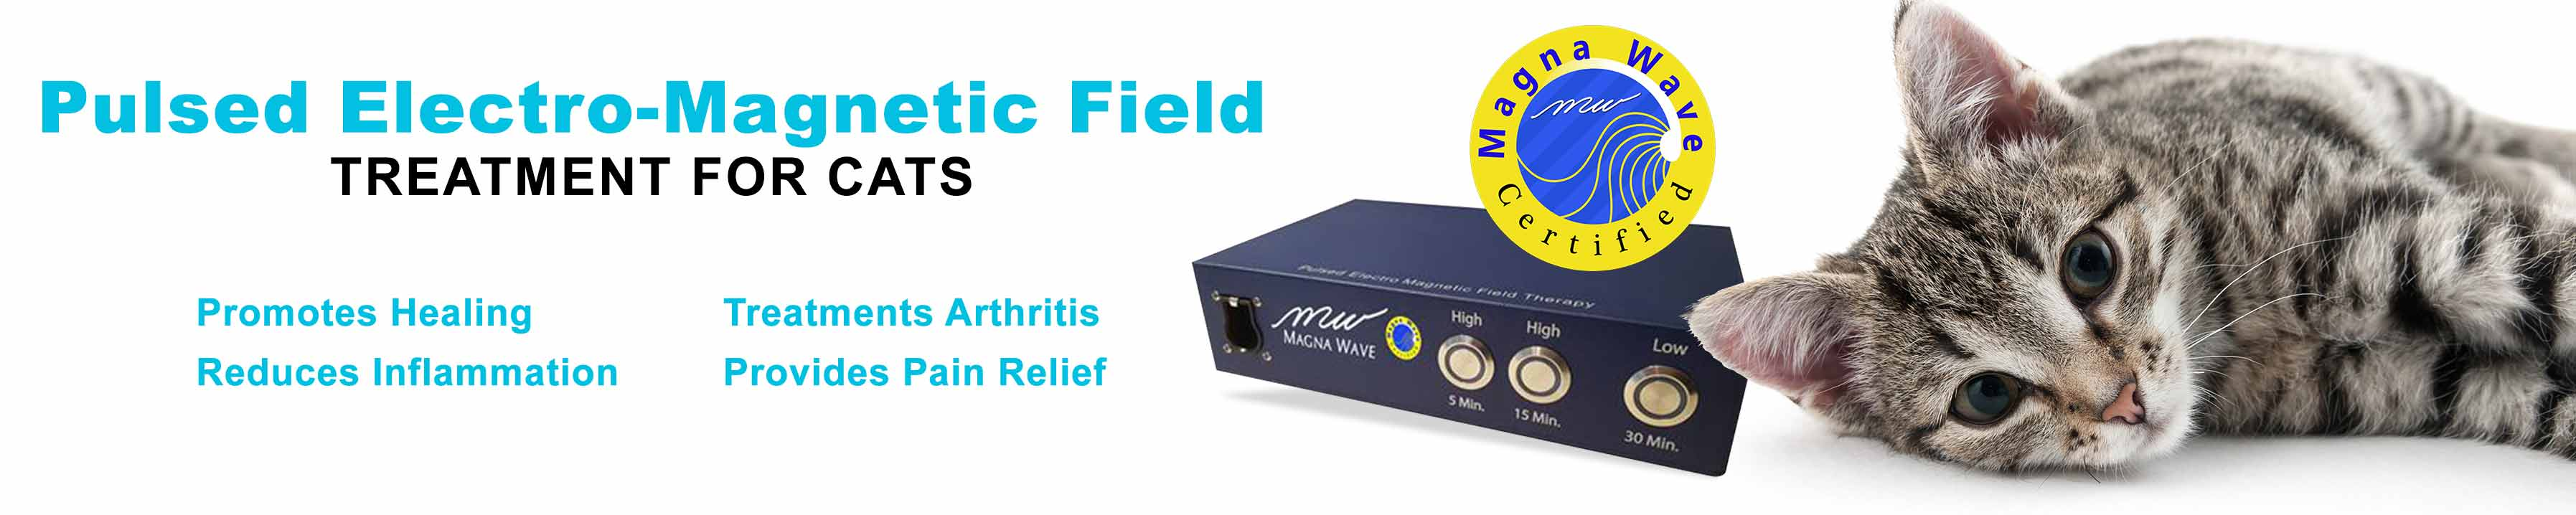 Pulsed Electro-Magnetic Field Treatment for Cats Promotes Healing, Reduces Inflammation, Treatments Arthritis, Provides Pain Relief